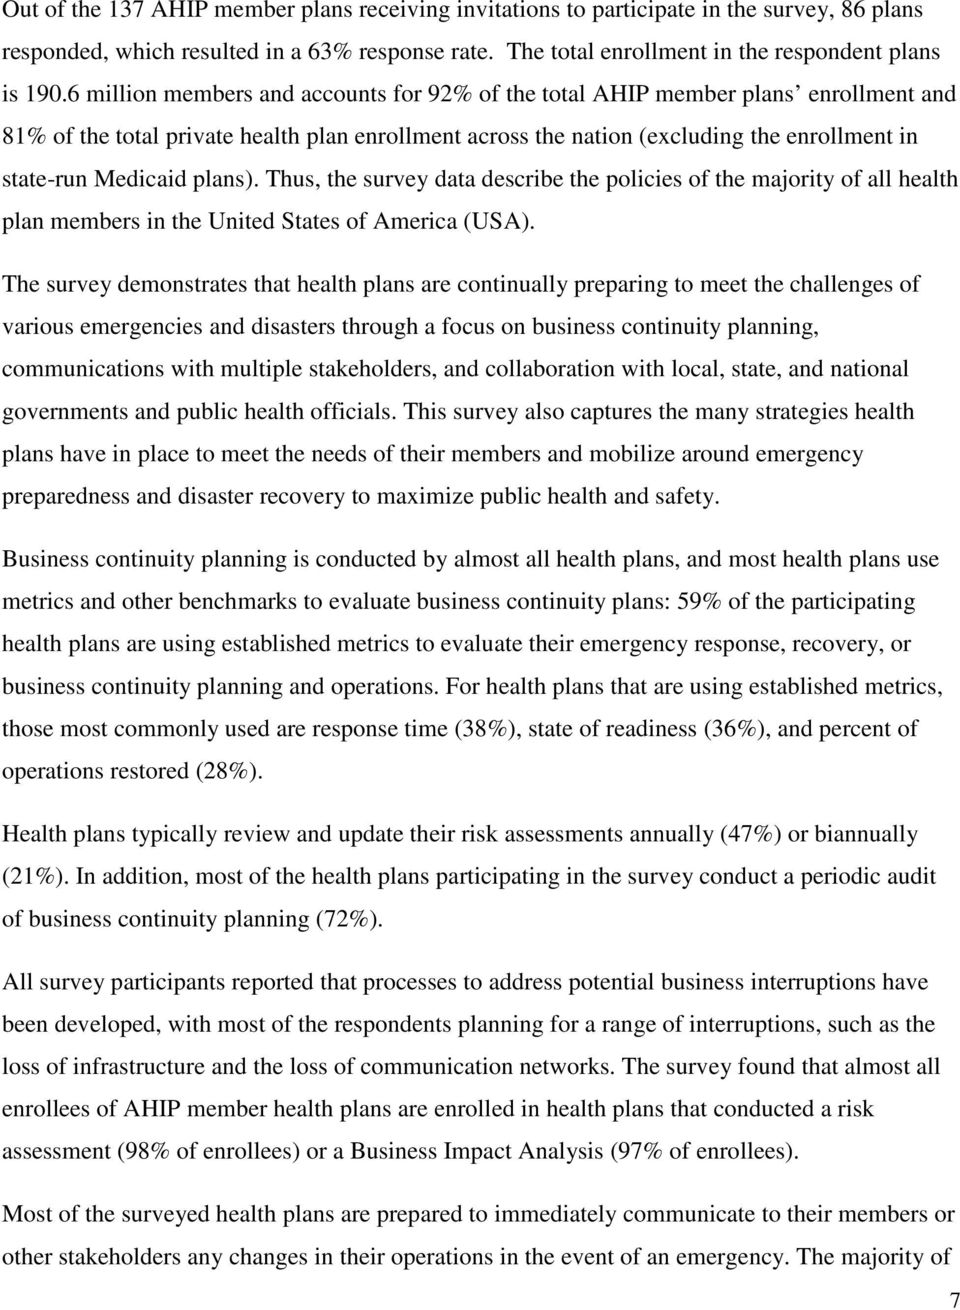 plans). Thus, the survey data describe the policies of the majority of all health plan members in the United States of America (USA).